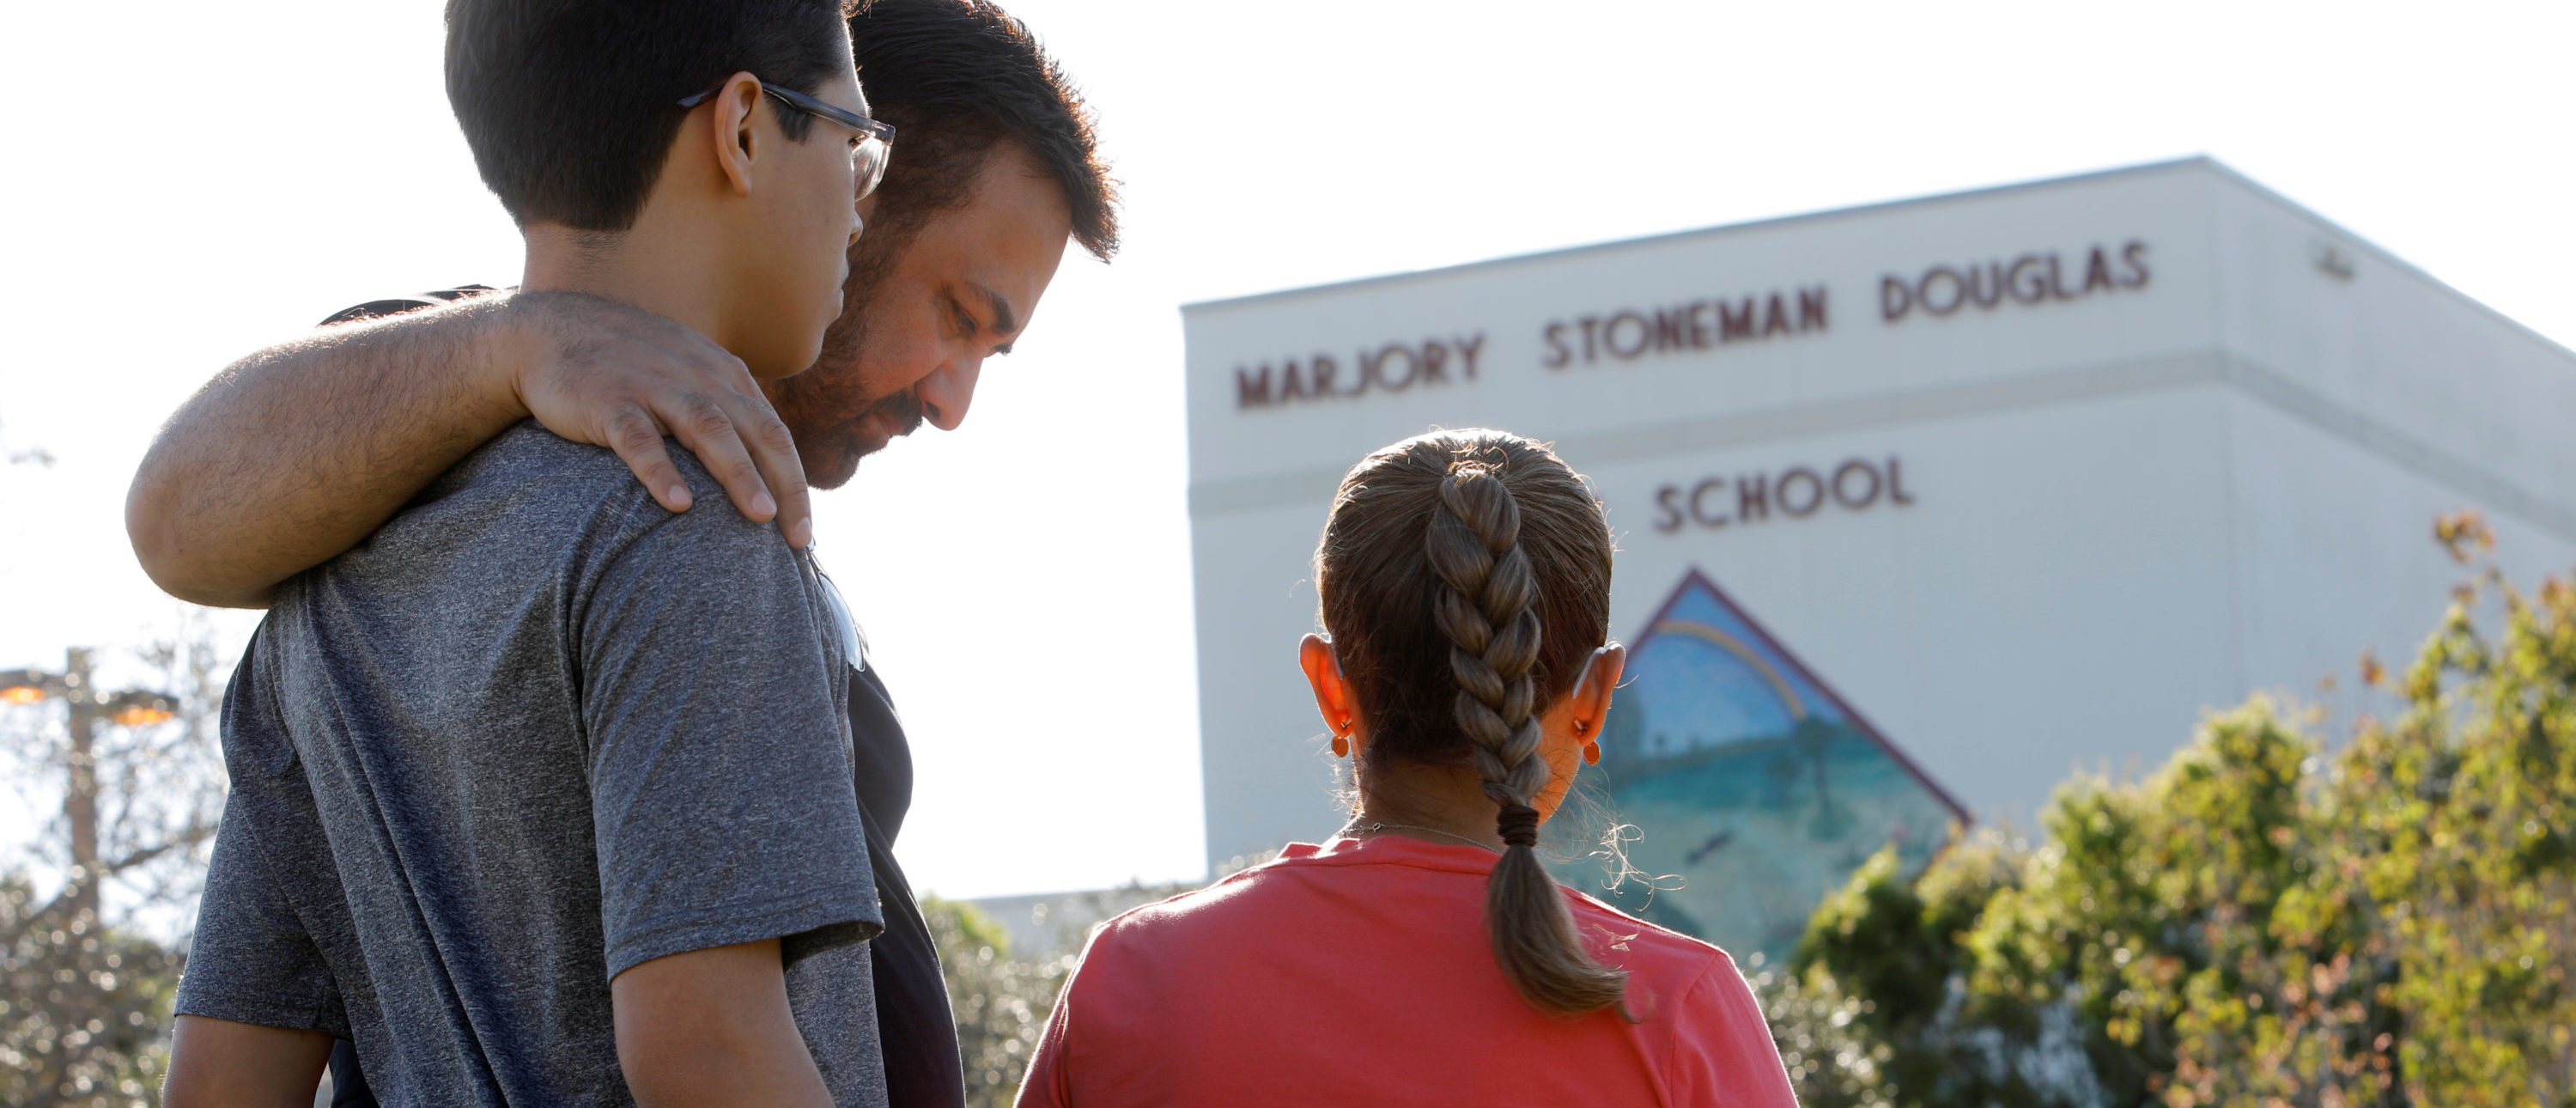 A father and his two children share a moment of reflection at Marjory Stoneman Douglas High School four days after the shooting there, in Parkland, Florida, February 18, 2018. REUTERS/Jonathan Drake